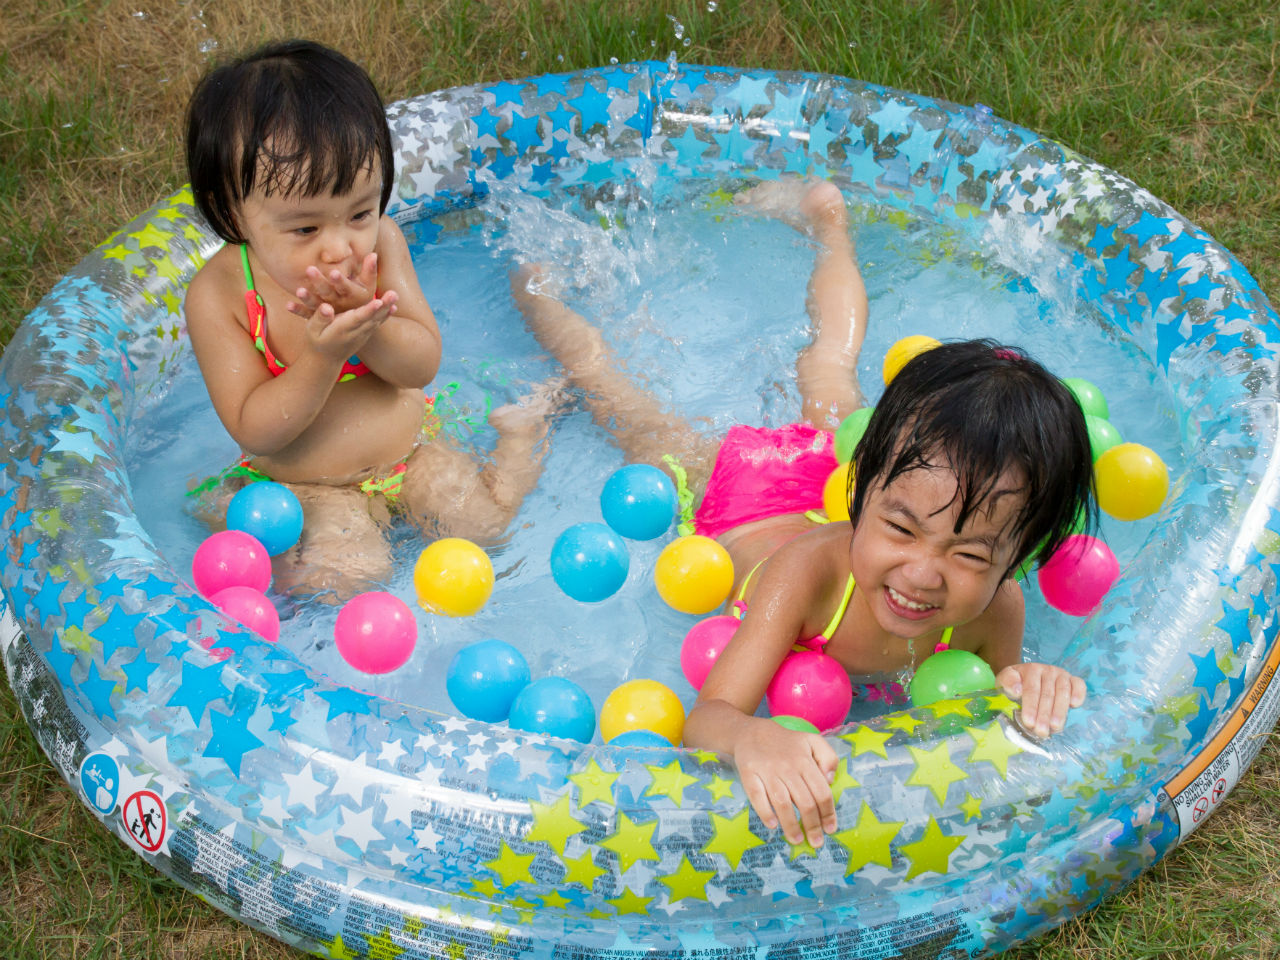 Two little girls playing in a blow up pool with neon balls